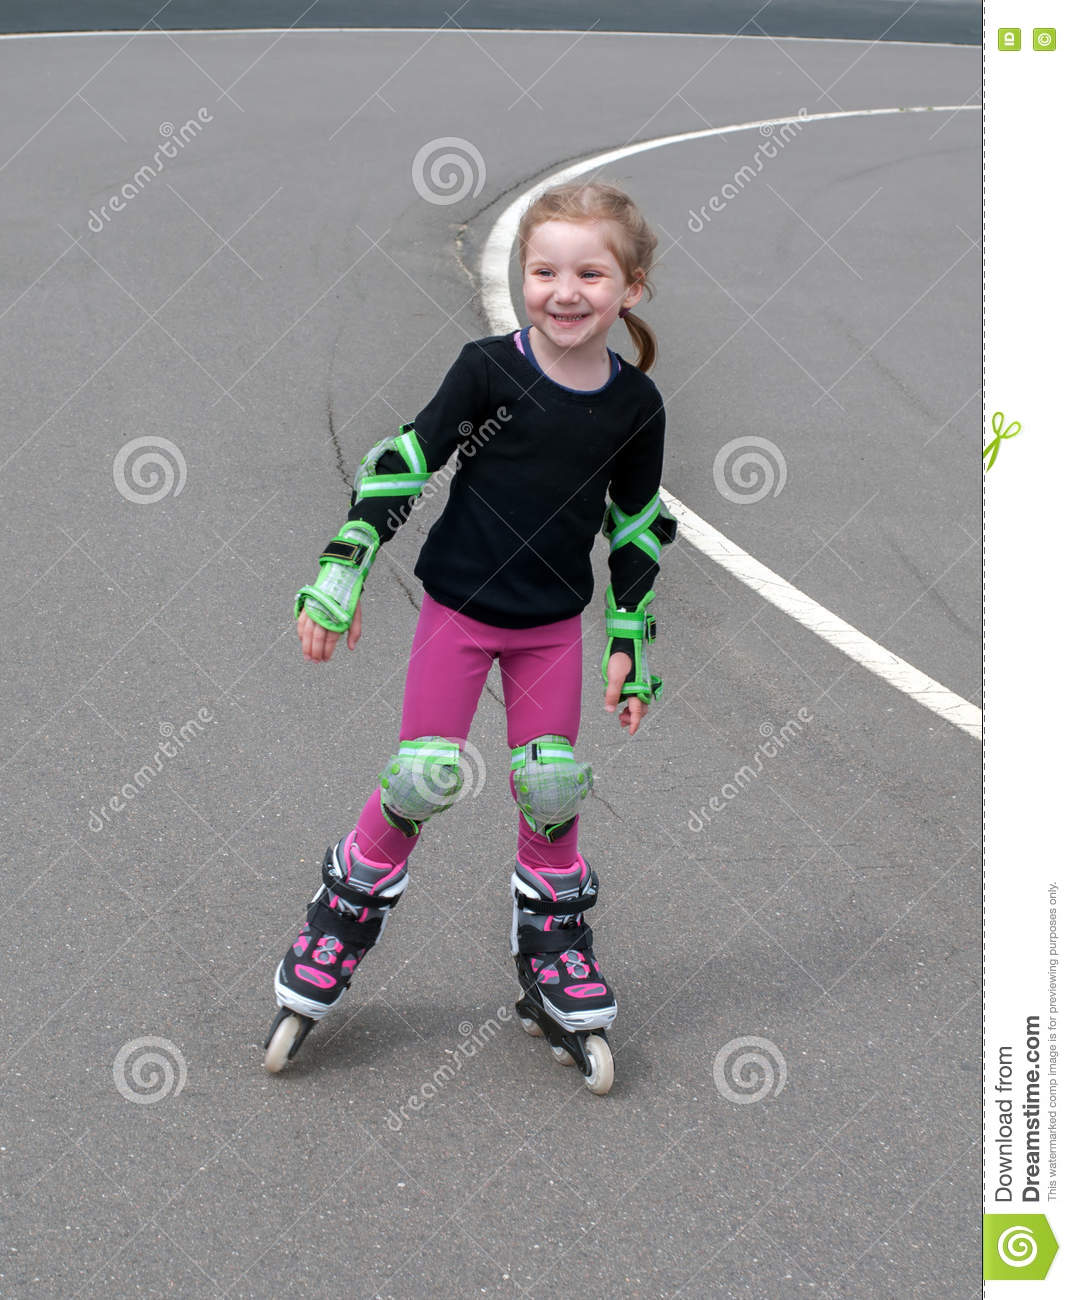 A little smiling girl practicing inline (roller) skating in the outdoor stadium